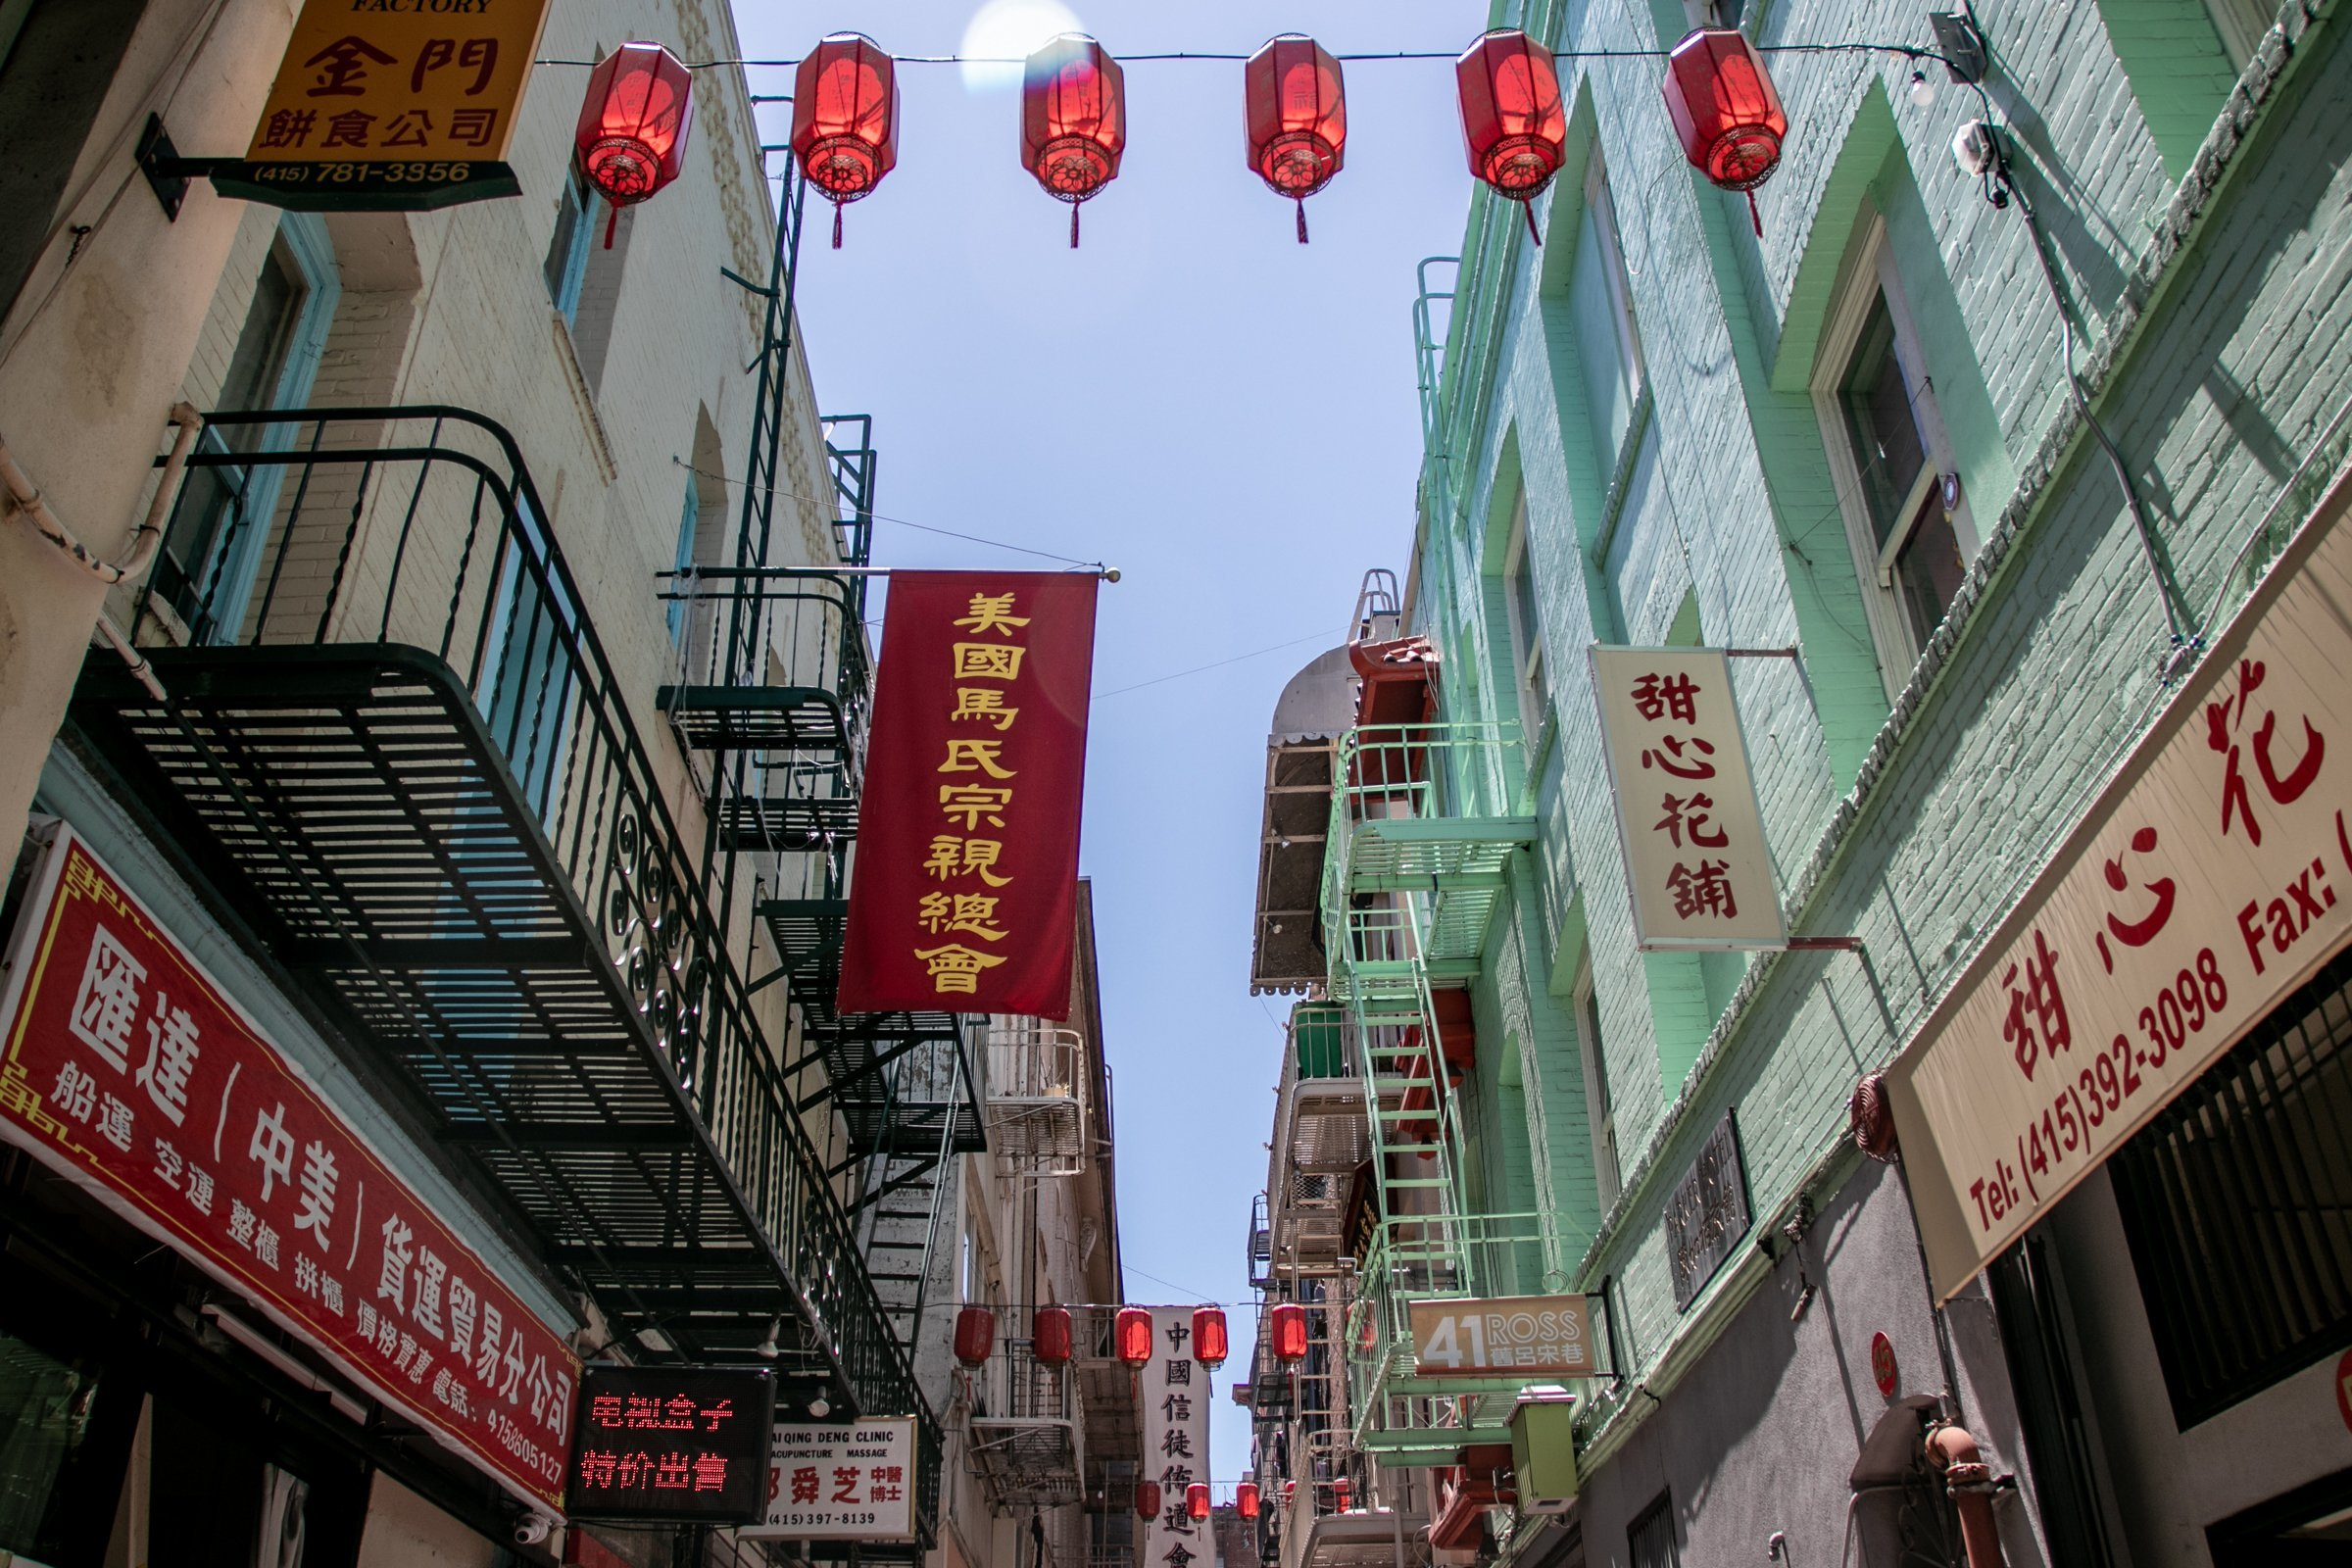 Lanterns And Shop Signs In Chinatown